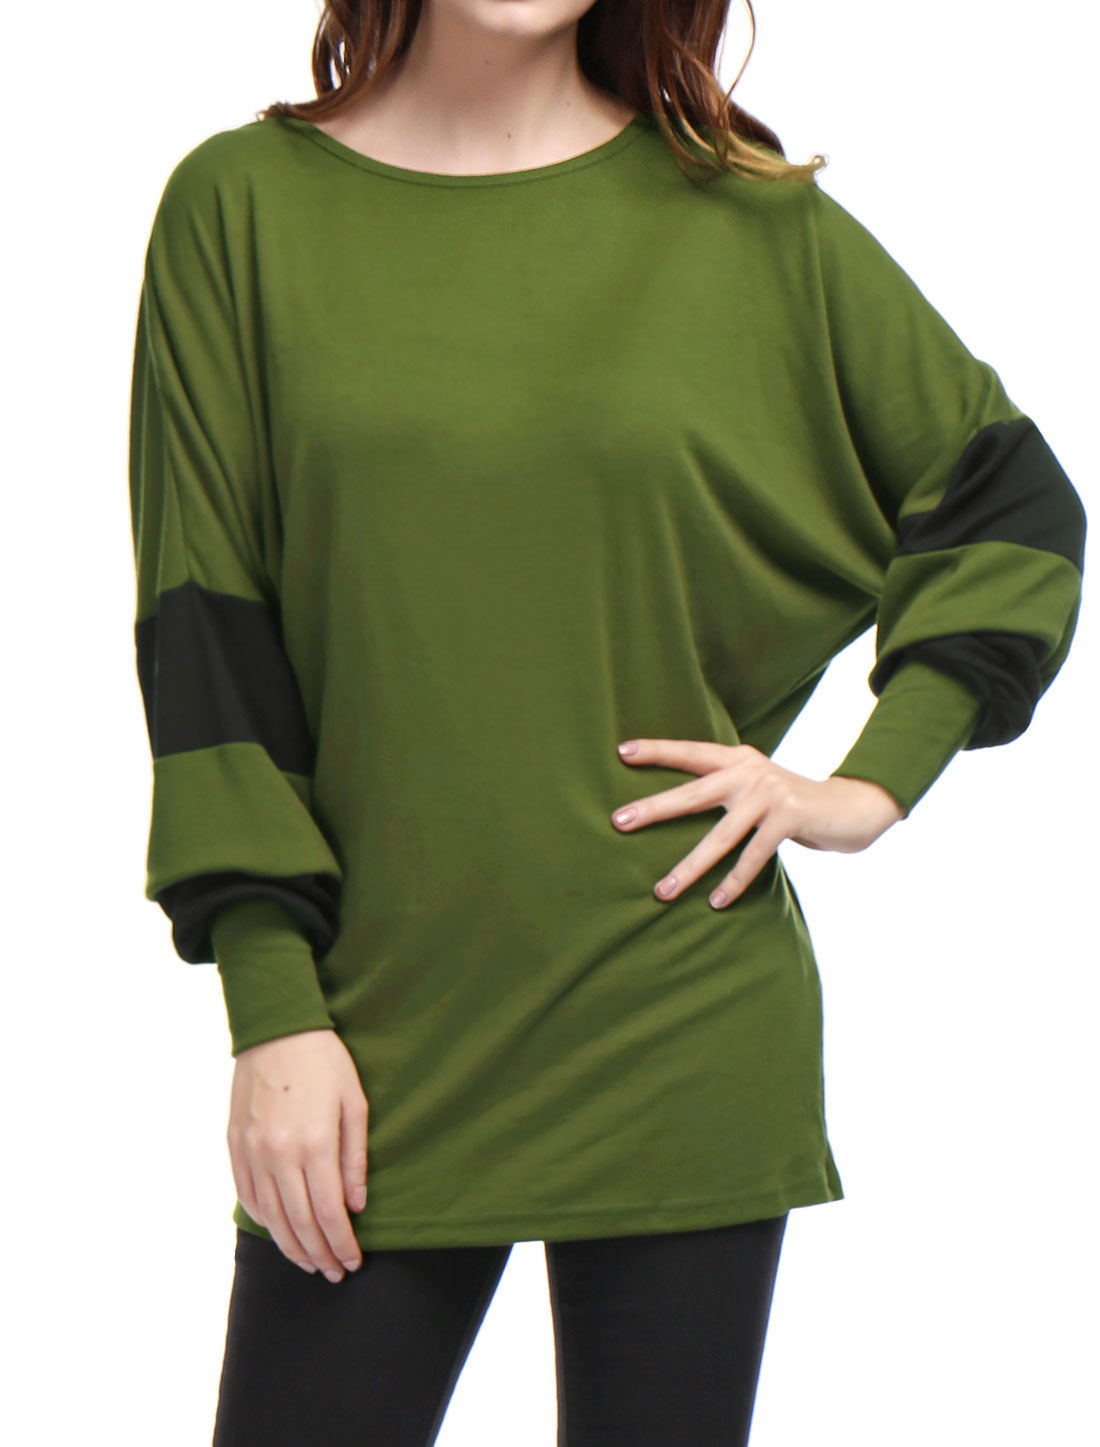 Women Color Block Batwing Loose Tunic Top Green XL